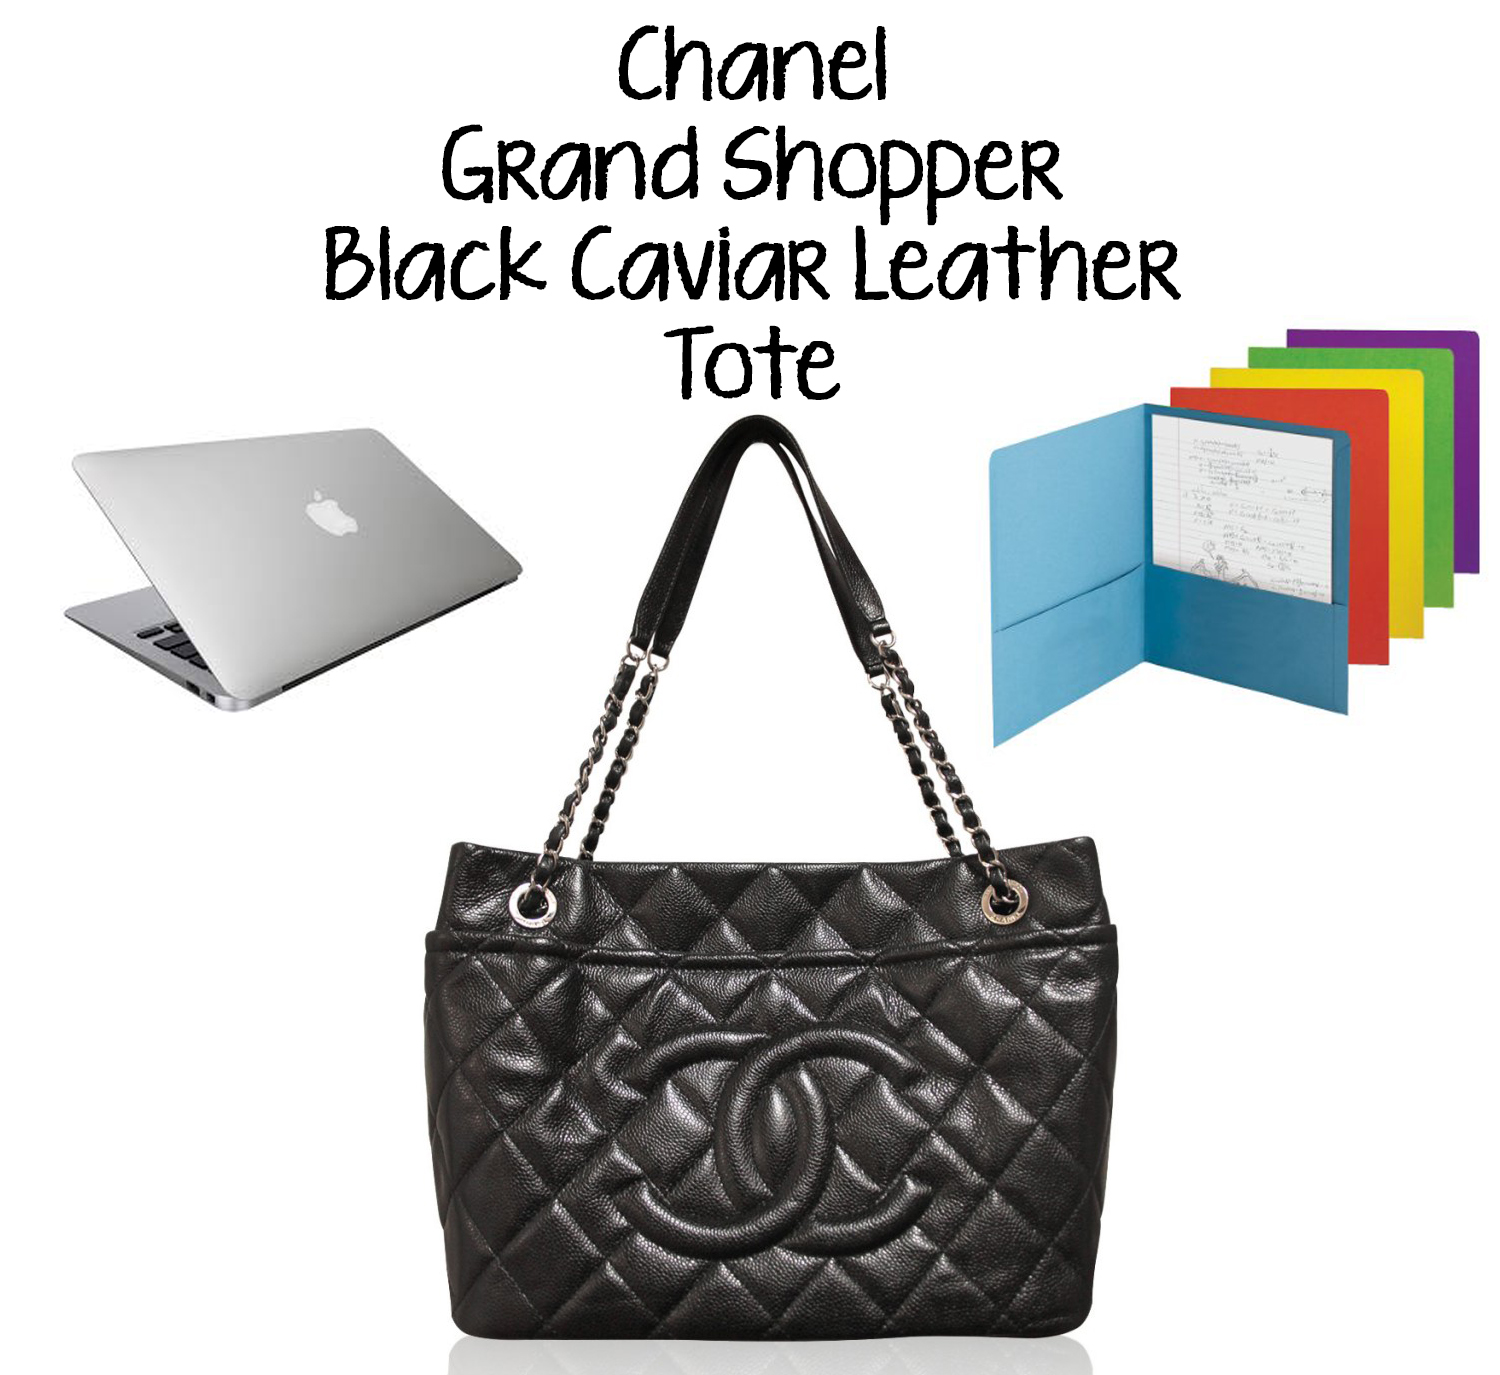 Chanel Grand Shopper Tote Bag Boca Raton